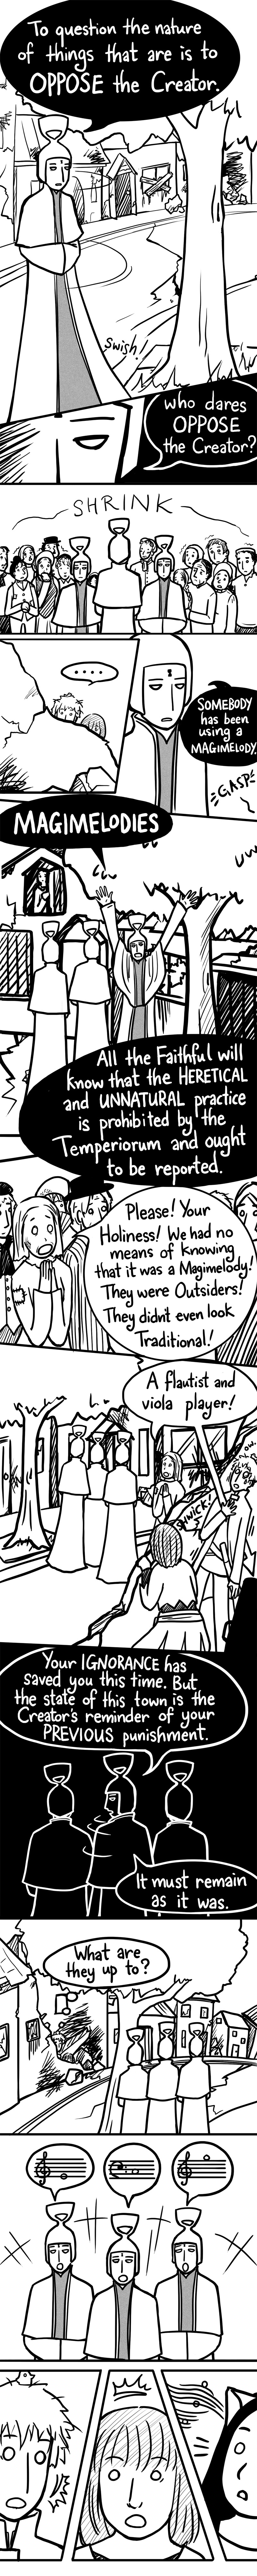 comic-2012-02-16-Priest-Chorus.jpg